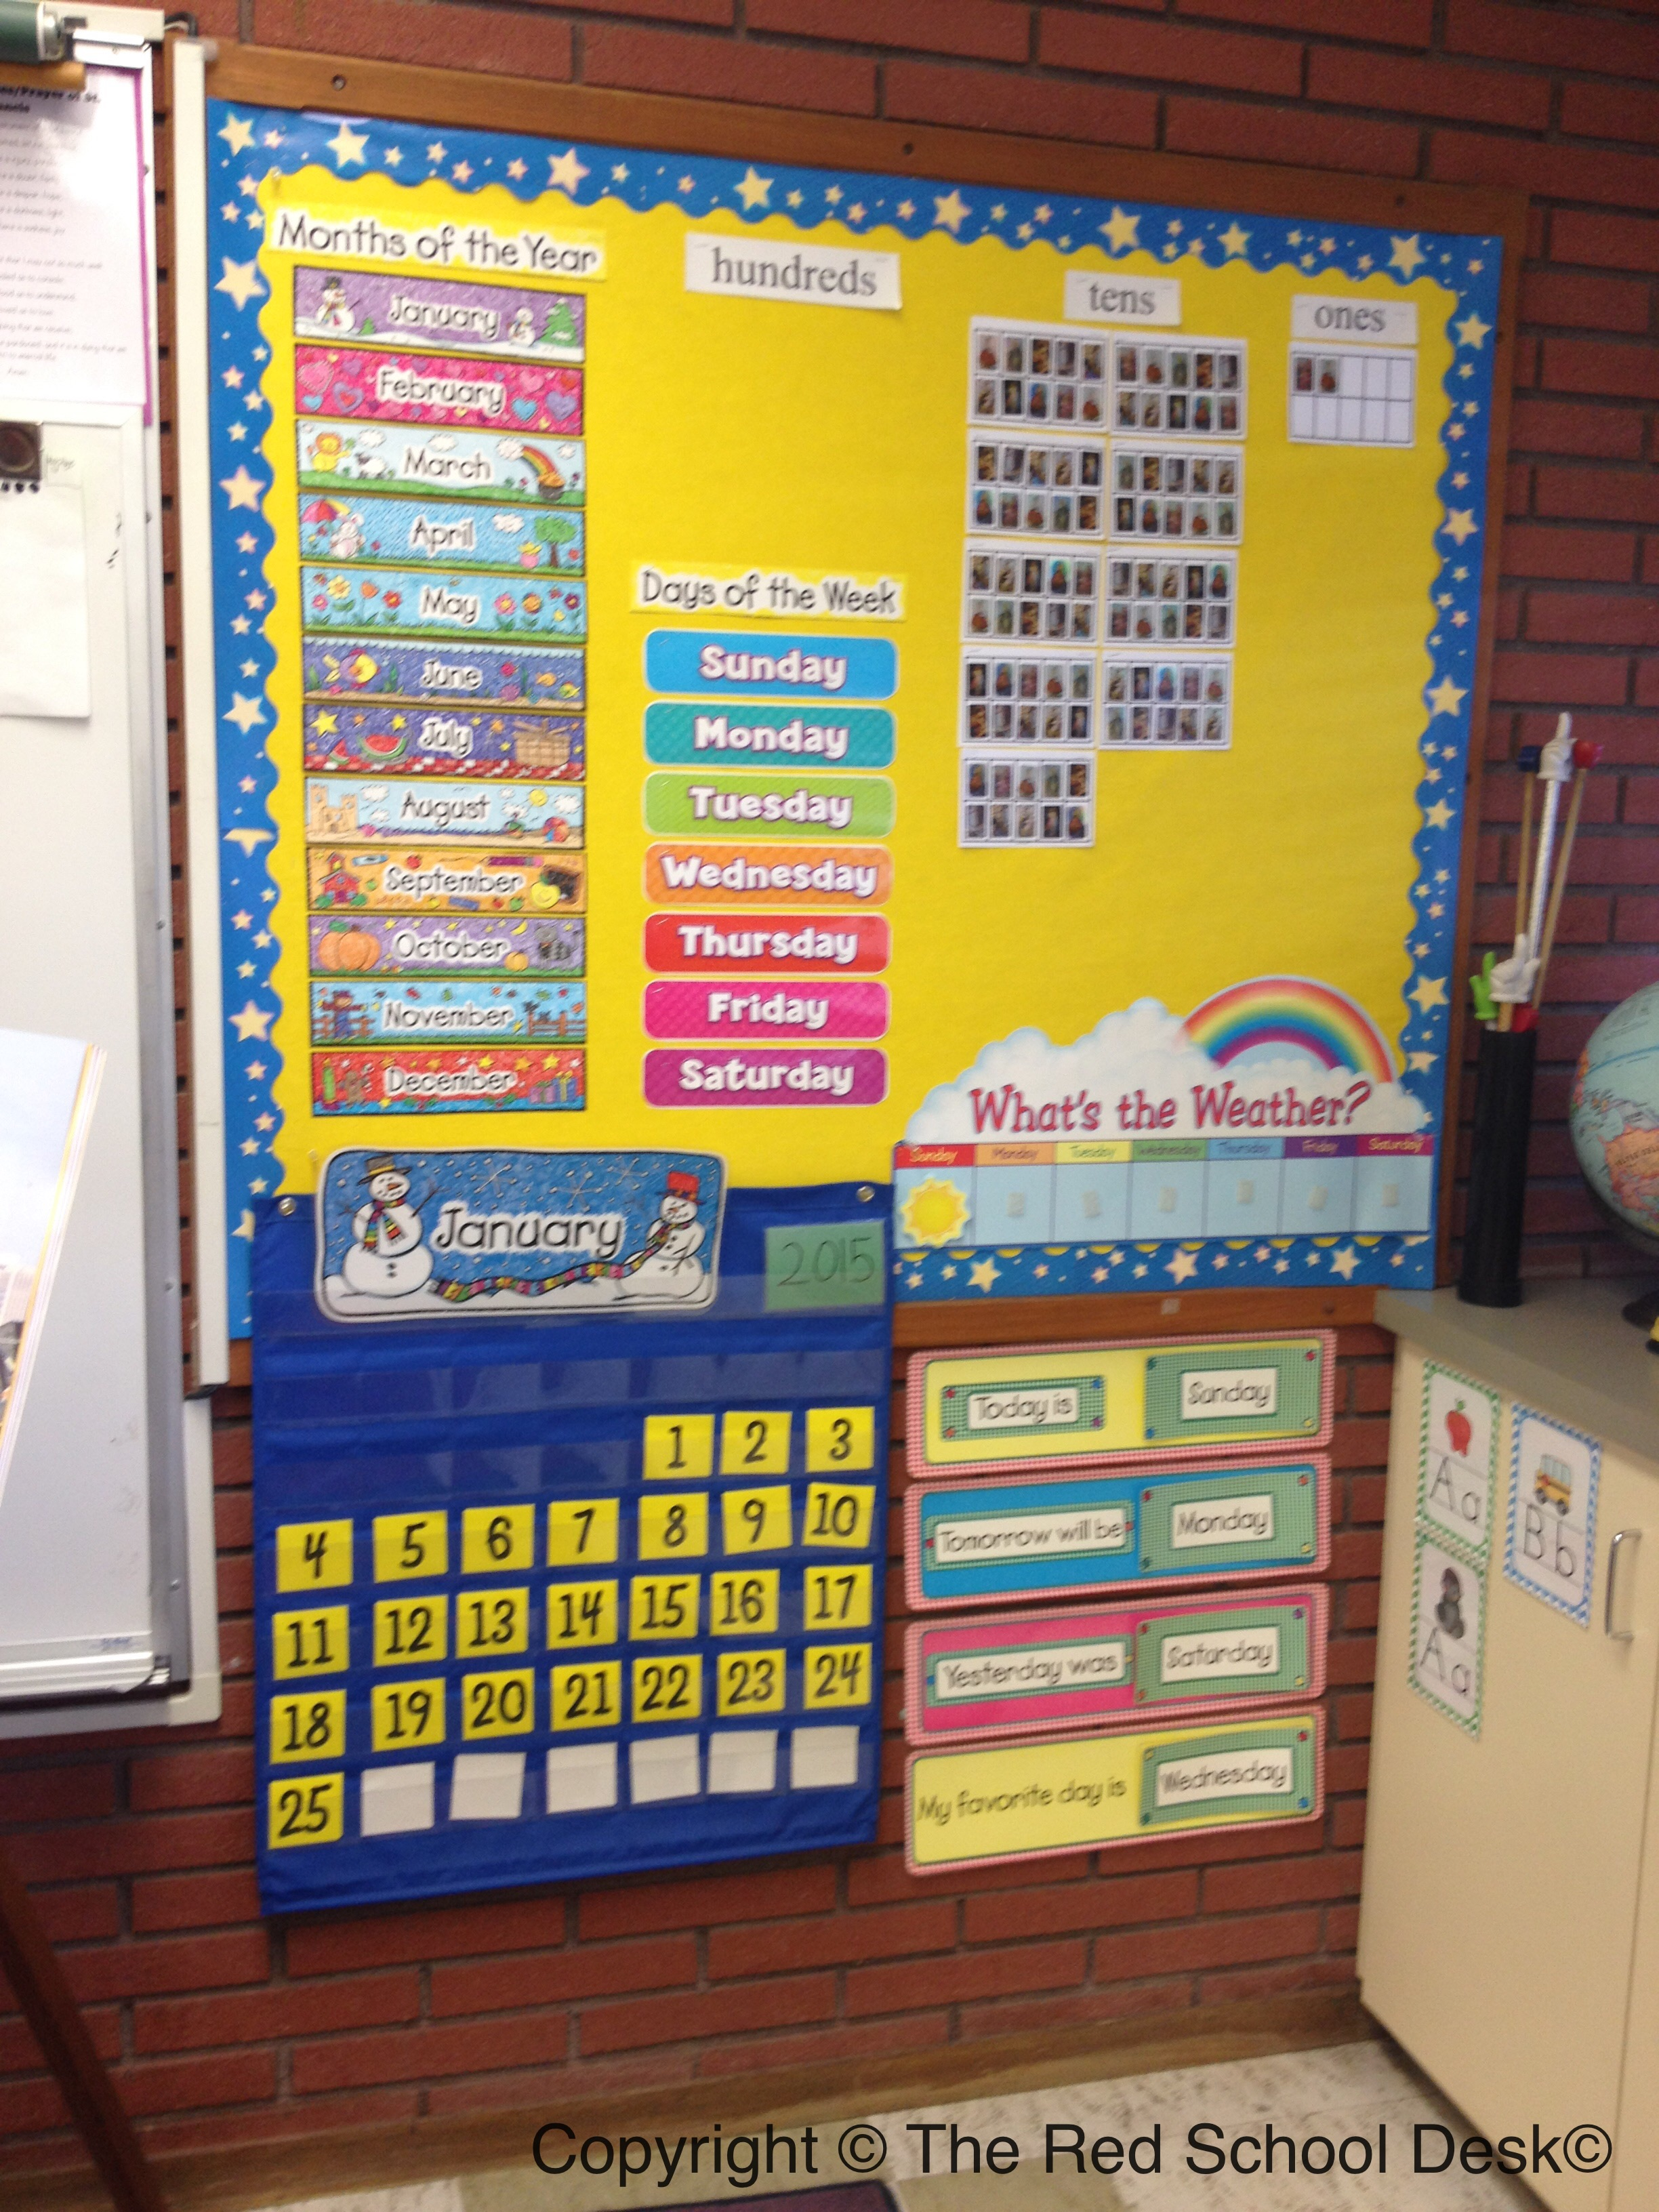 My Classroom Walls & Me: Bulletin Boards Oh My!! | The Red School Desk